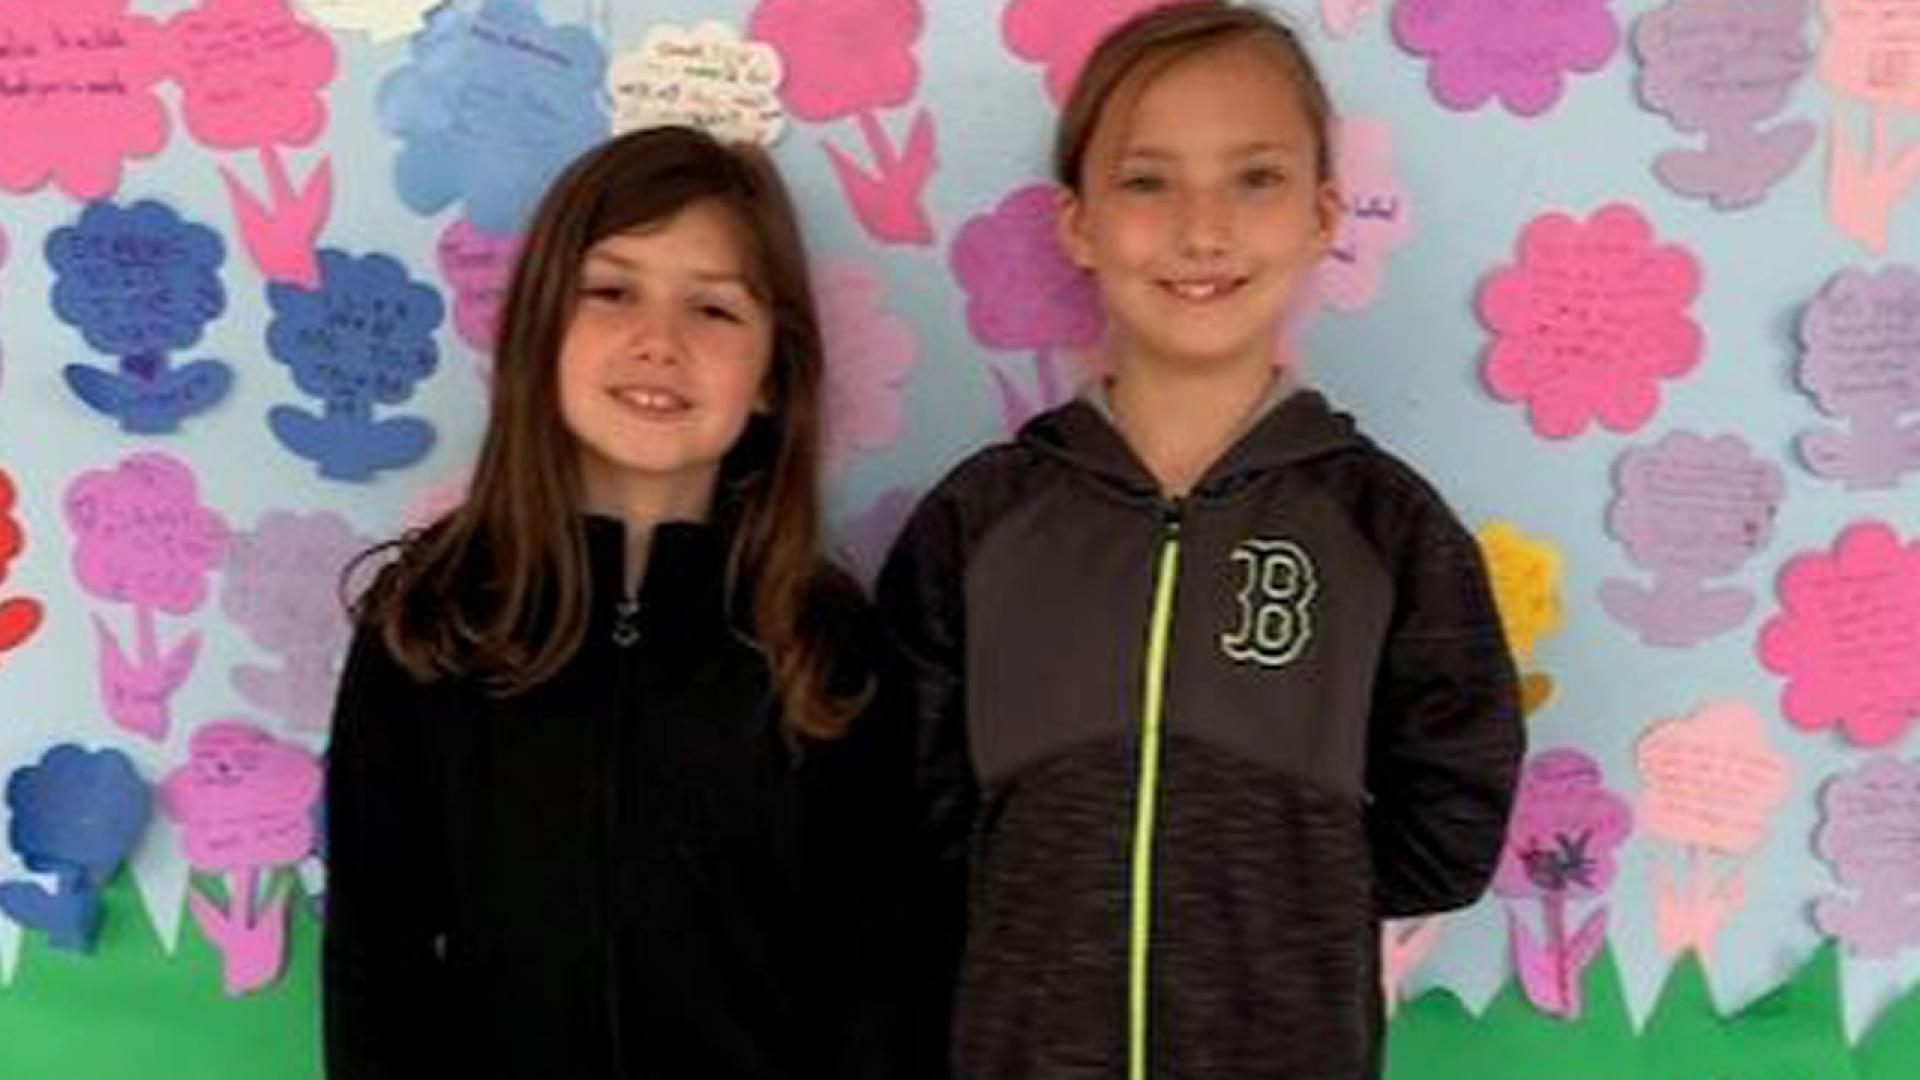 Keira Silvia, left, was choking an a hot dog when Shailyn Ryan, right, performed the Heimlich maneuver.